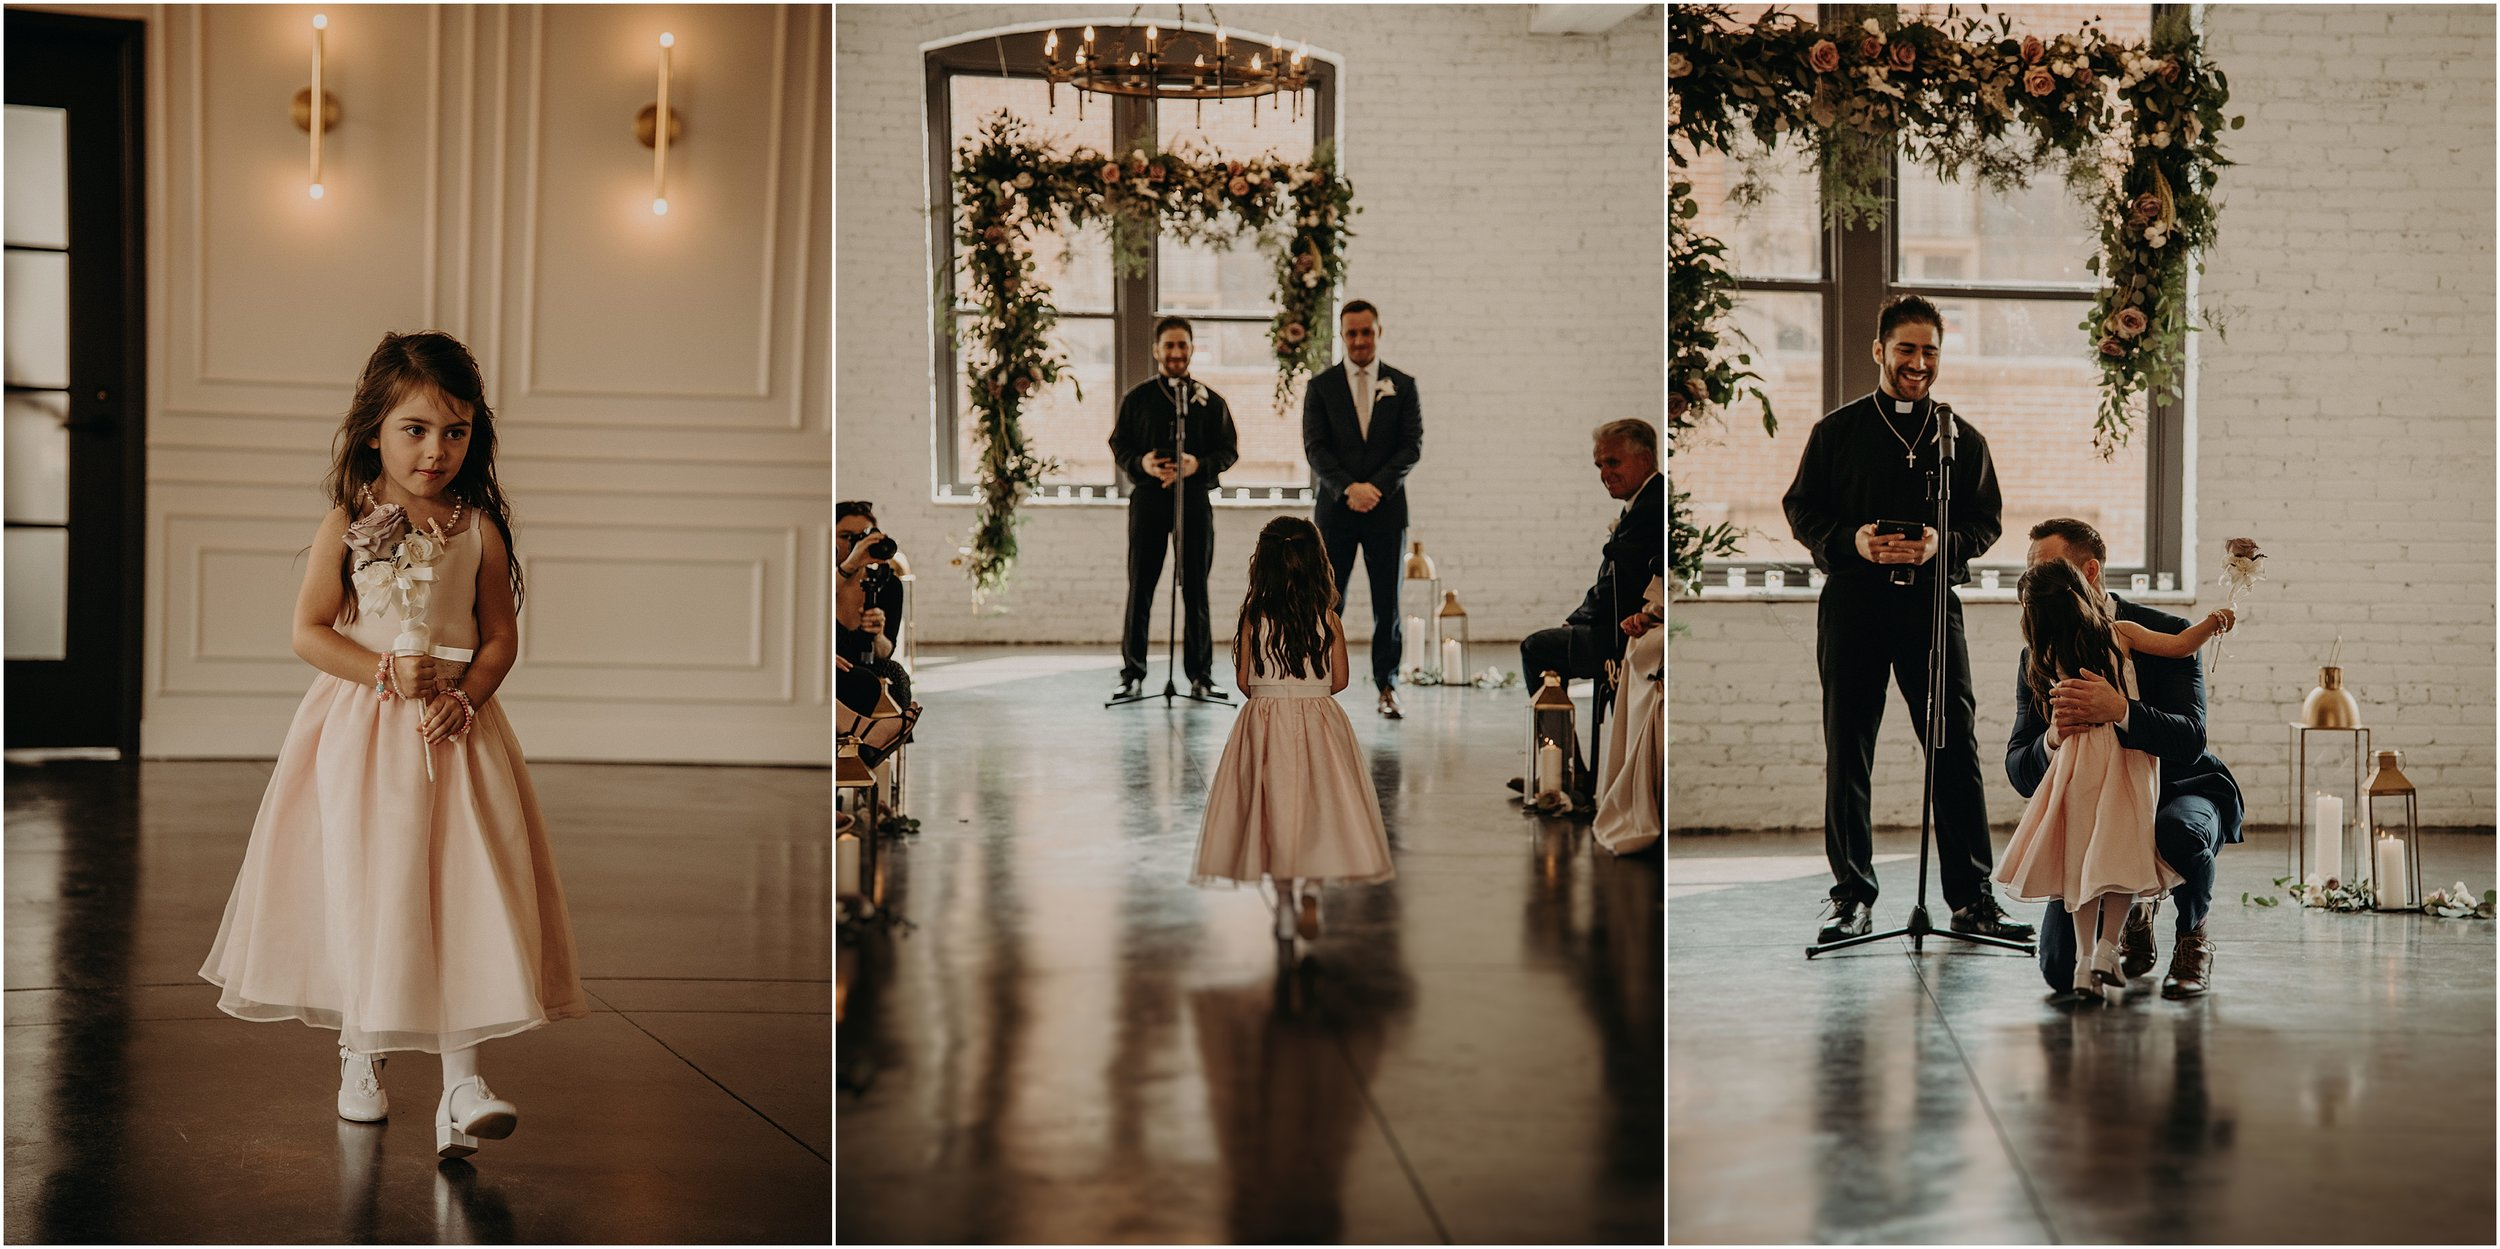 The groom's future stepdaughter walks down the aisle before her mom